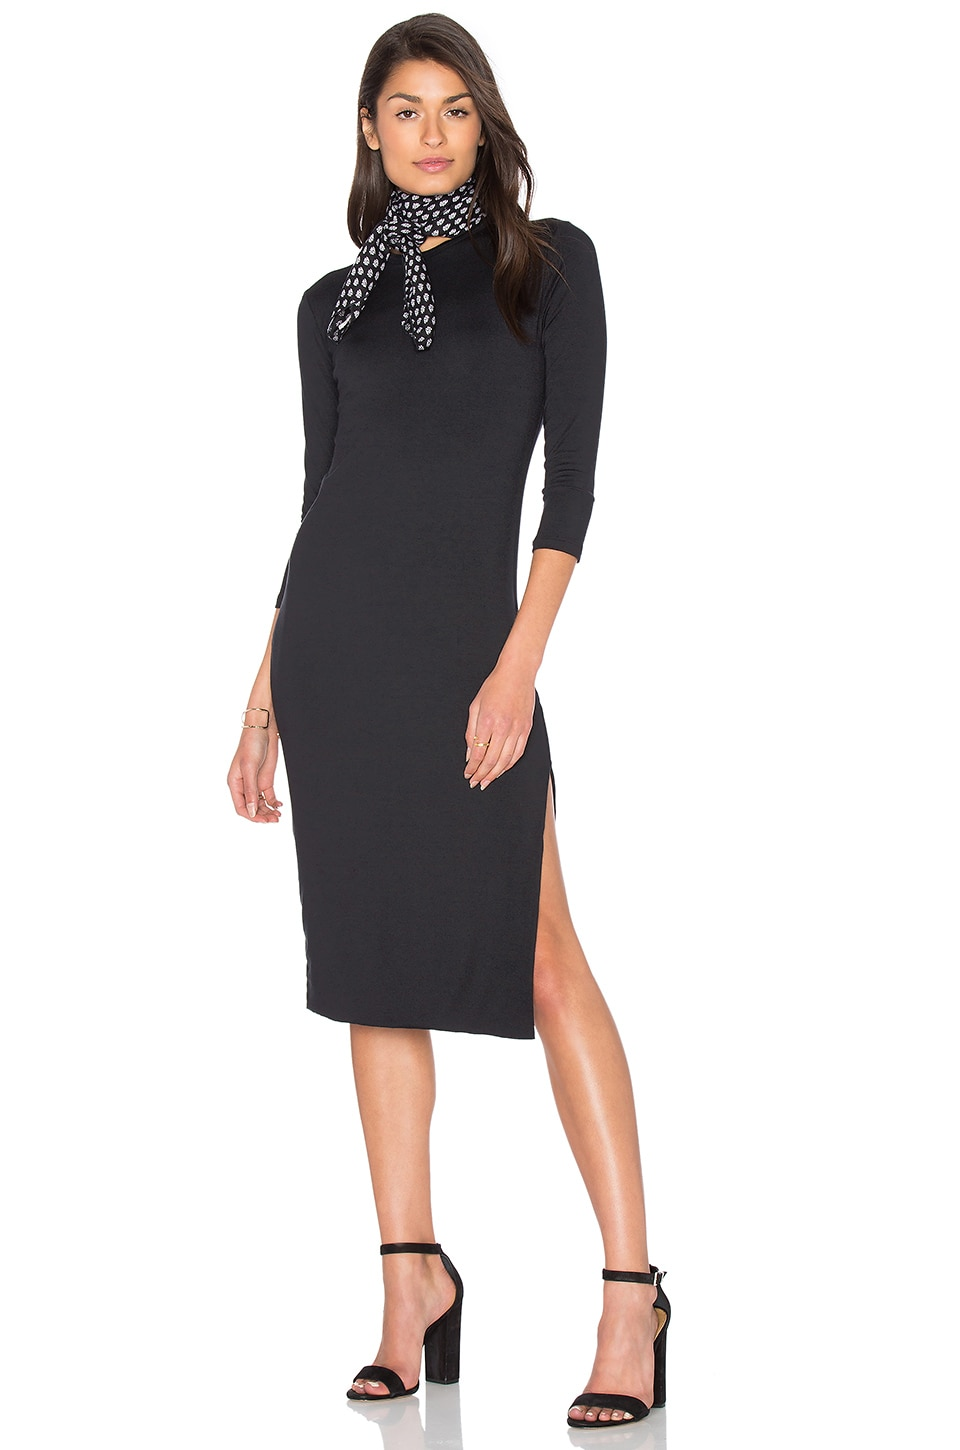 Nia Dress by amour vert